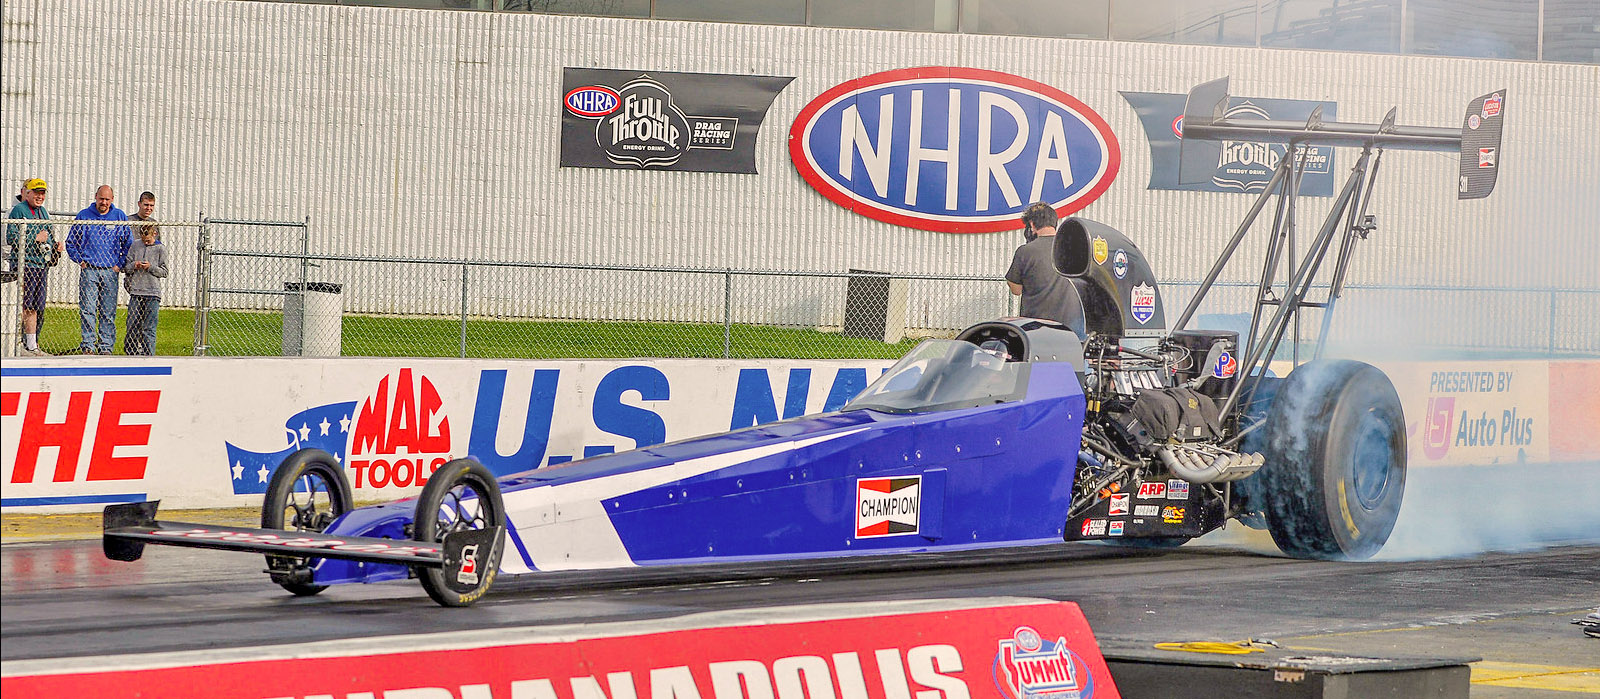 Michalek Brothers Racing driver Kyle Michalek burns out at Lucas Oil Raceway at Indianapolis prior to completing his A/fuel dragster license upgrade.